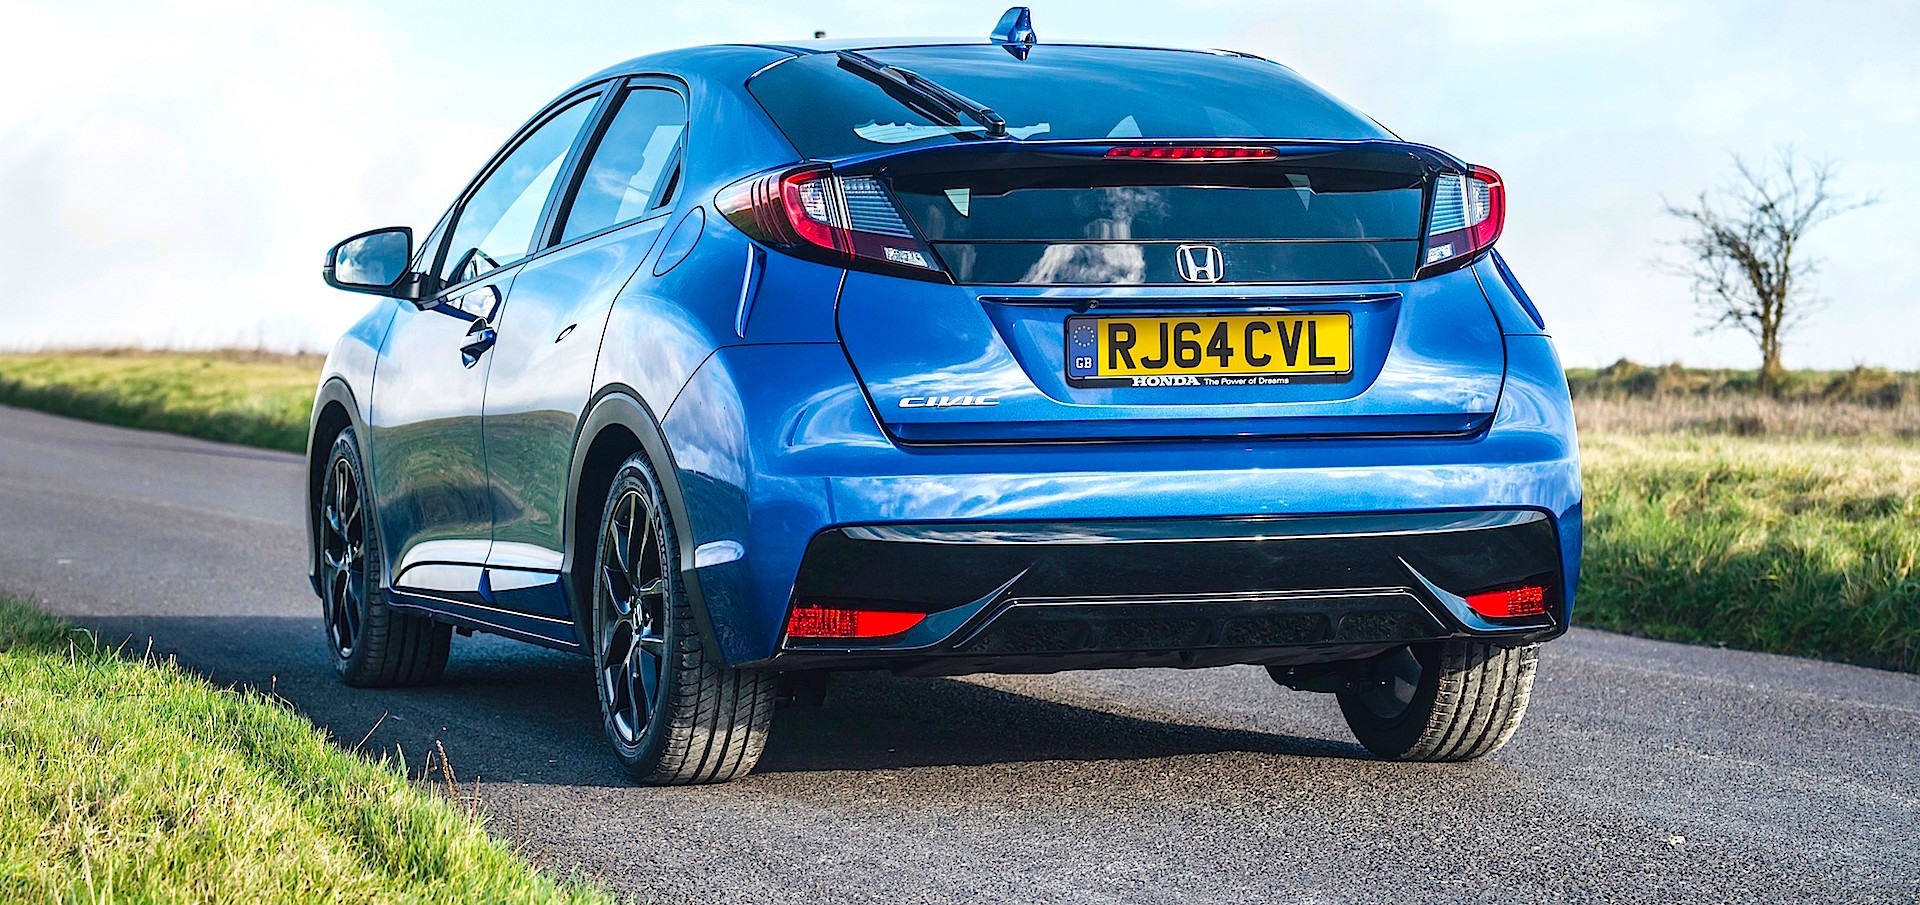 Honda Says Prices Will Start From GBP16815 OTR 25924 For The Entry Level 14 I VTEC Manual S Grade Model Which Include All New Connect